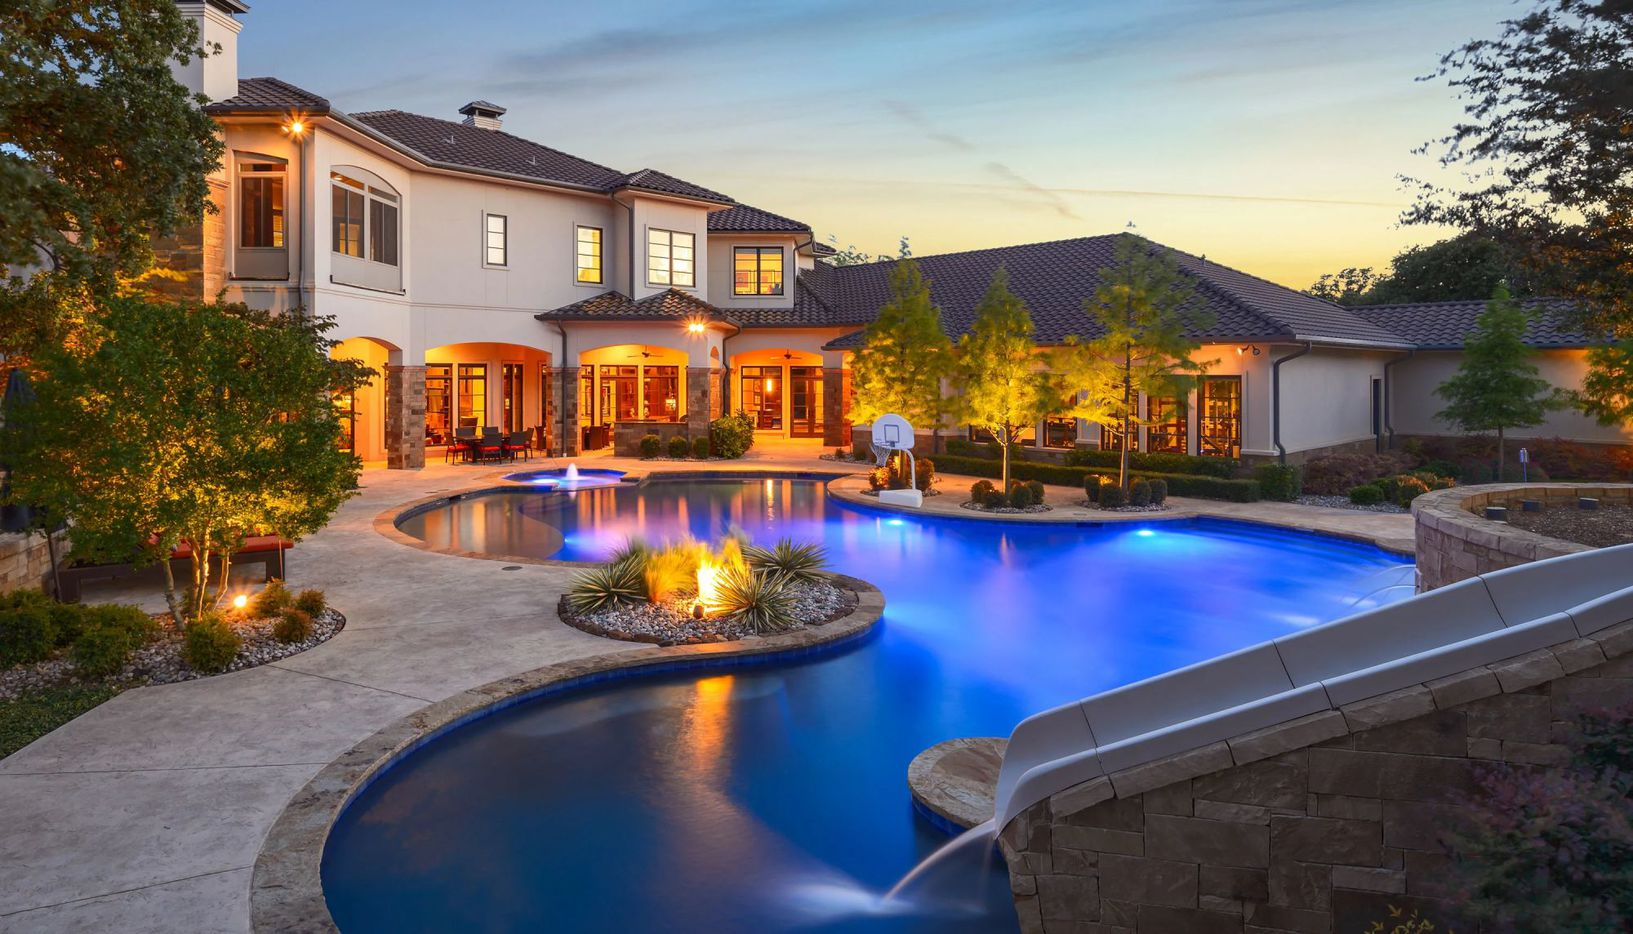 The $11.49 million house is in Southlake,